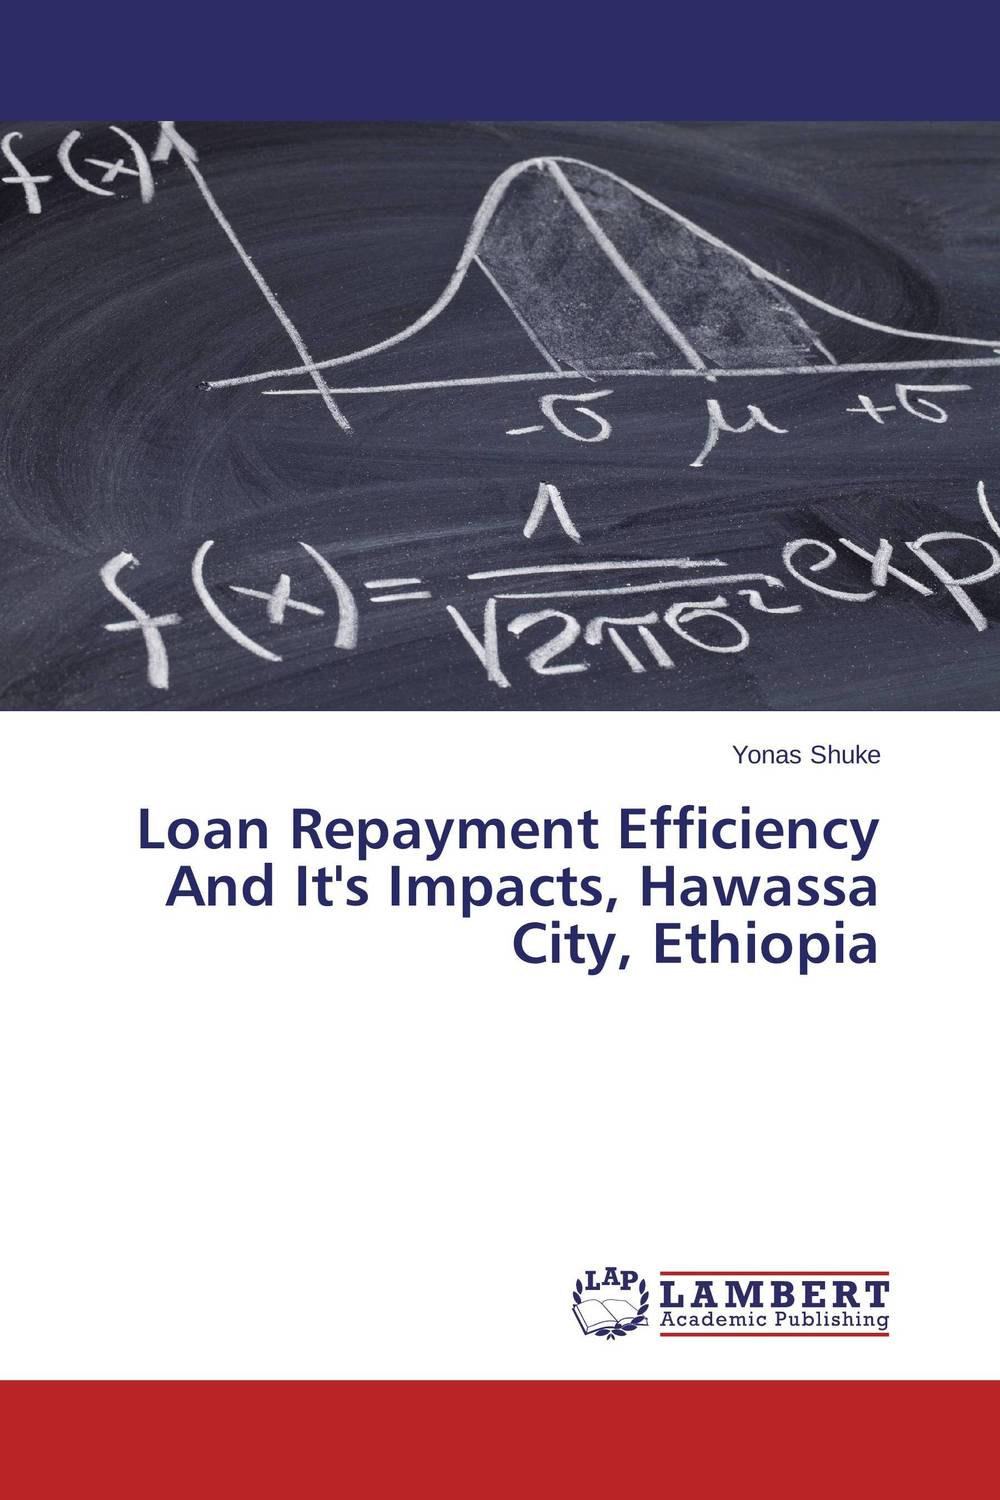 Loan Repayment Efficiency And It's Impacts, Hawassa City, Ethiopia logistic management